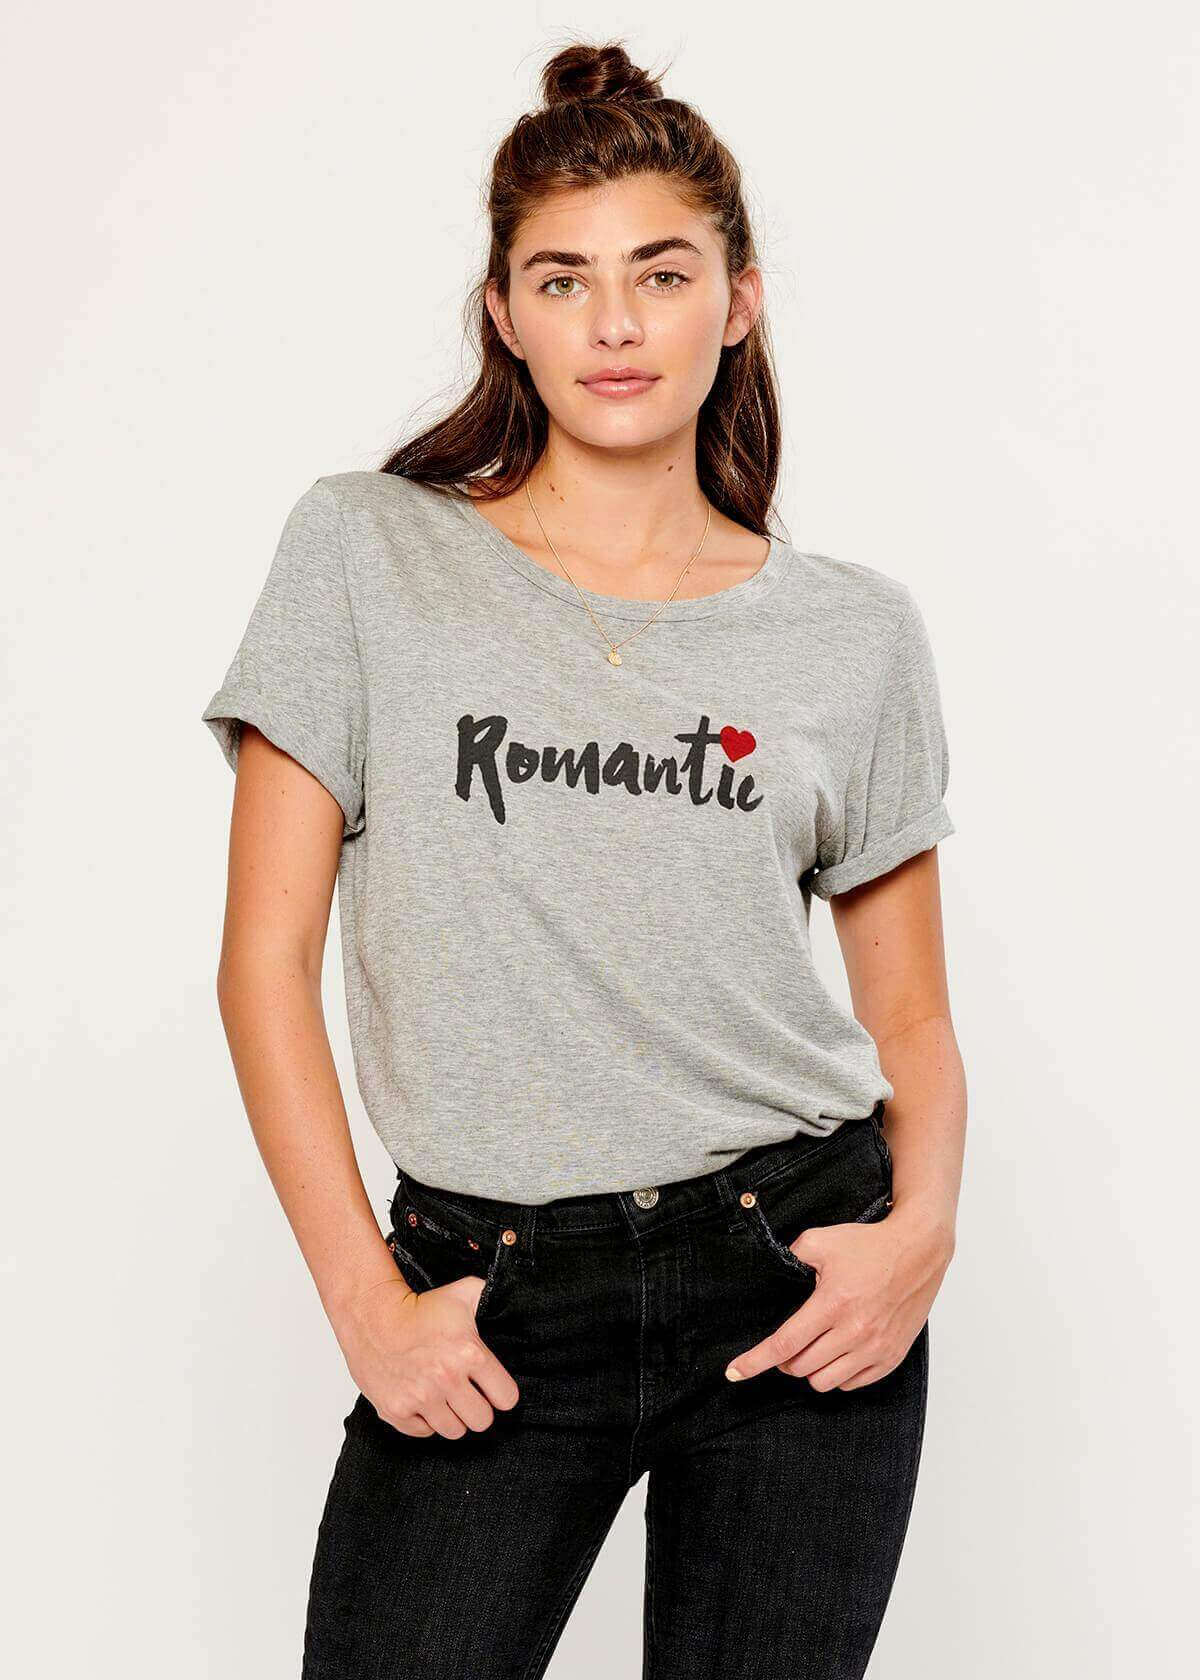 Lola - Loose Tee - Romantic - Gray